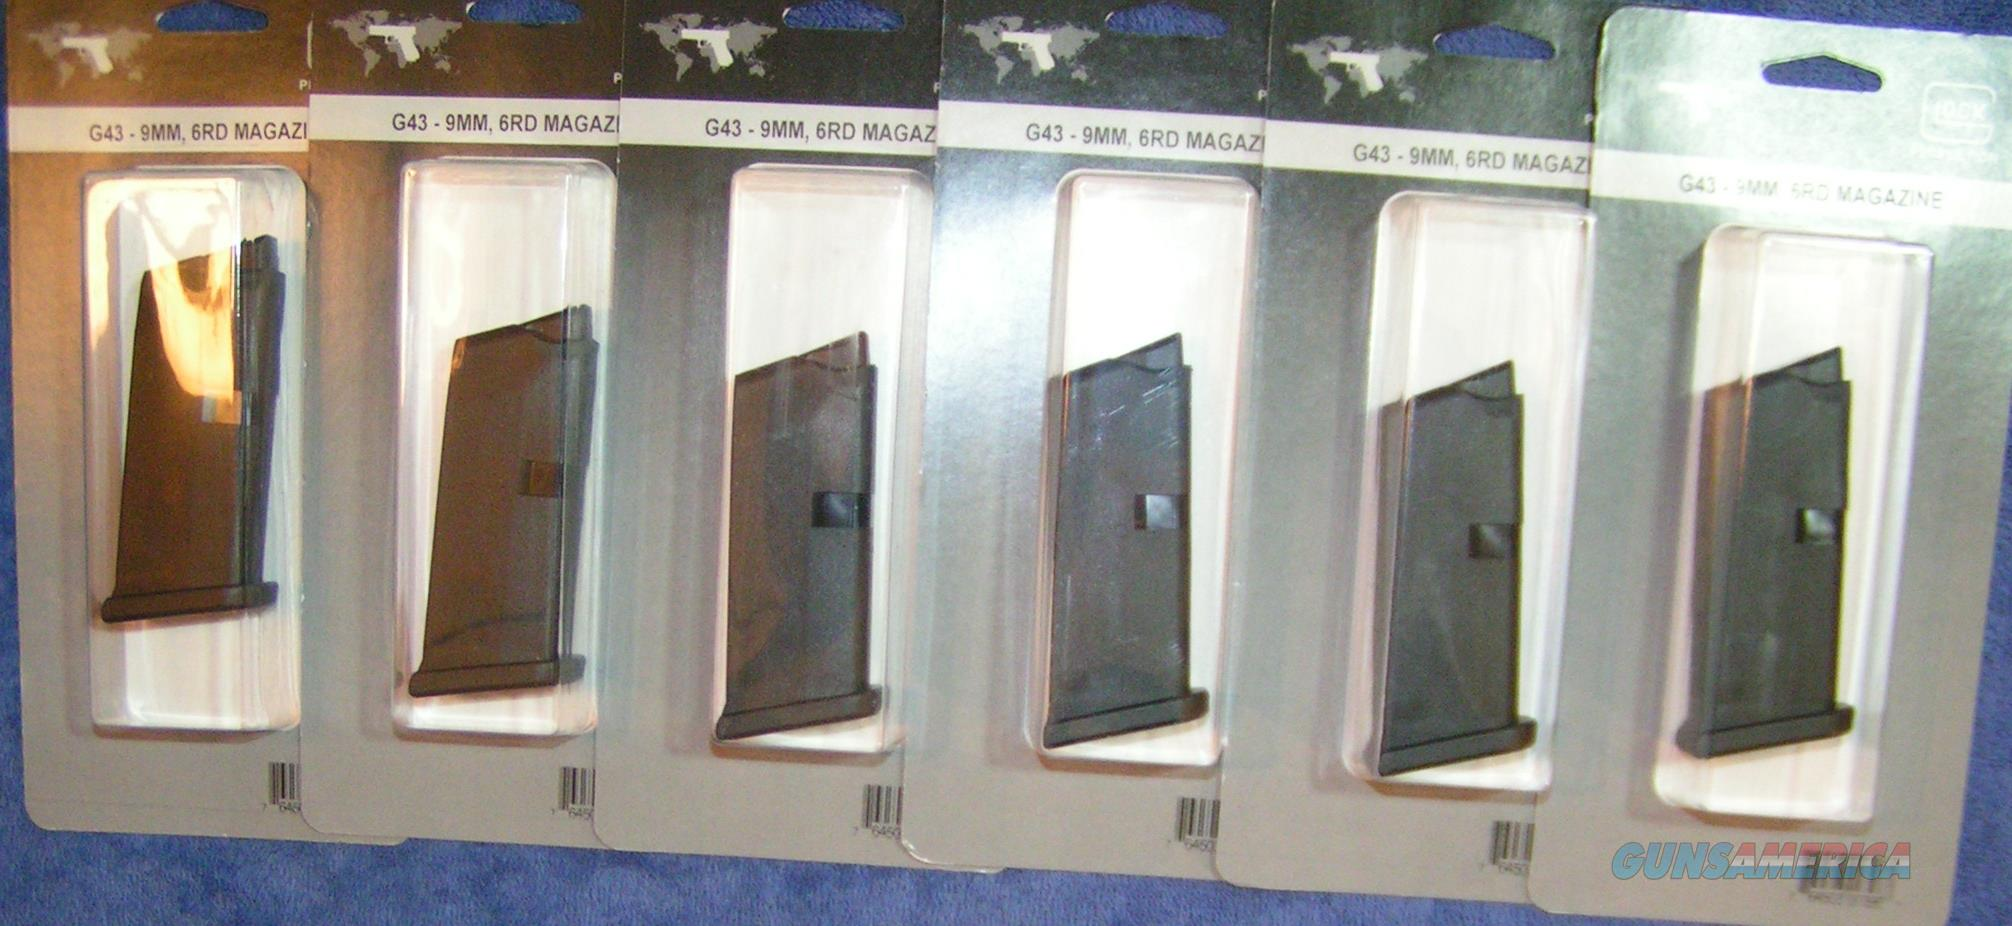 6 Glock 43 mags 9mm 6 round factory $25 each    Non-Guns > Magazines & Clips > Pistol Magazines > Glock